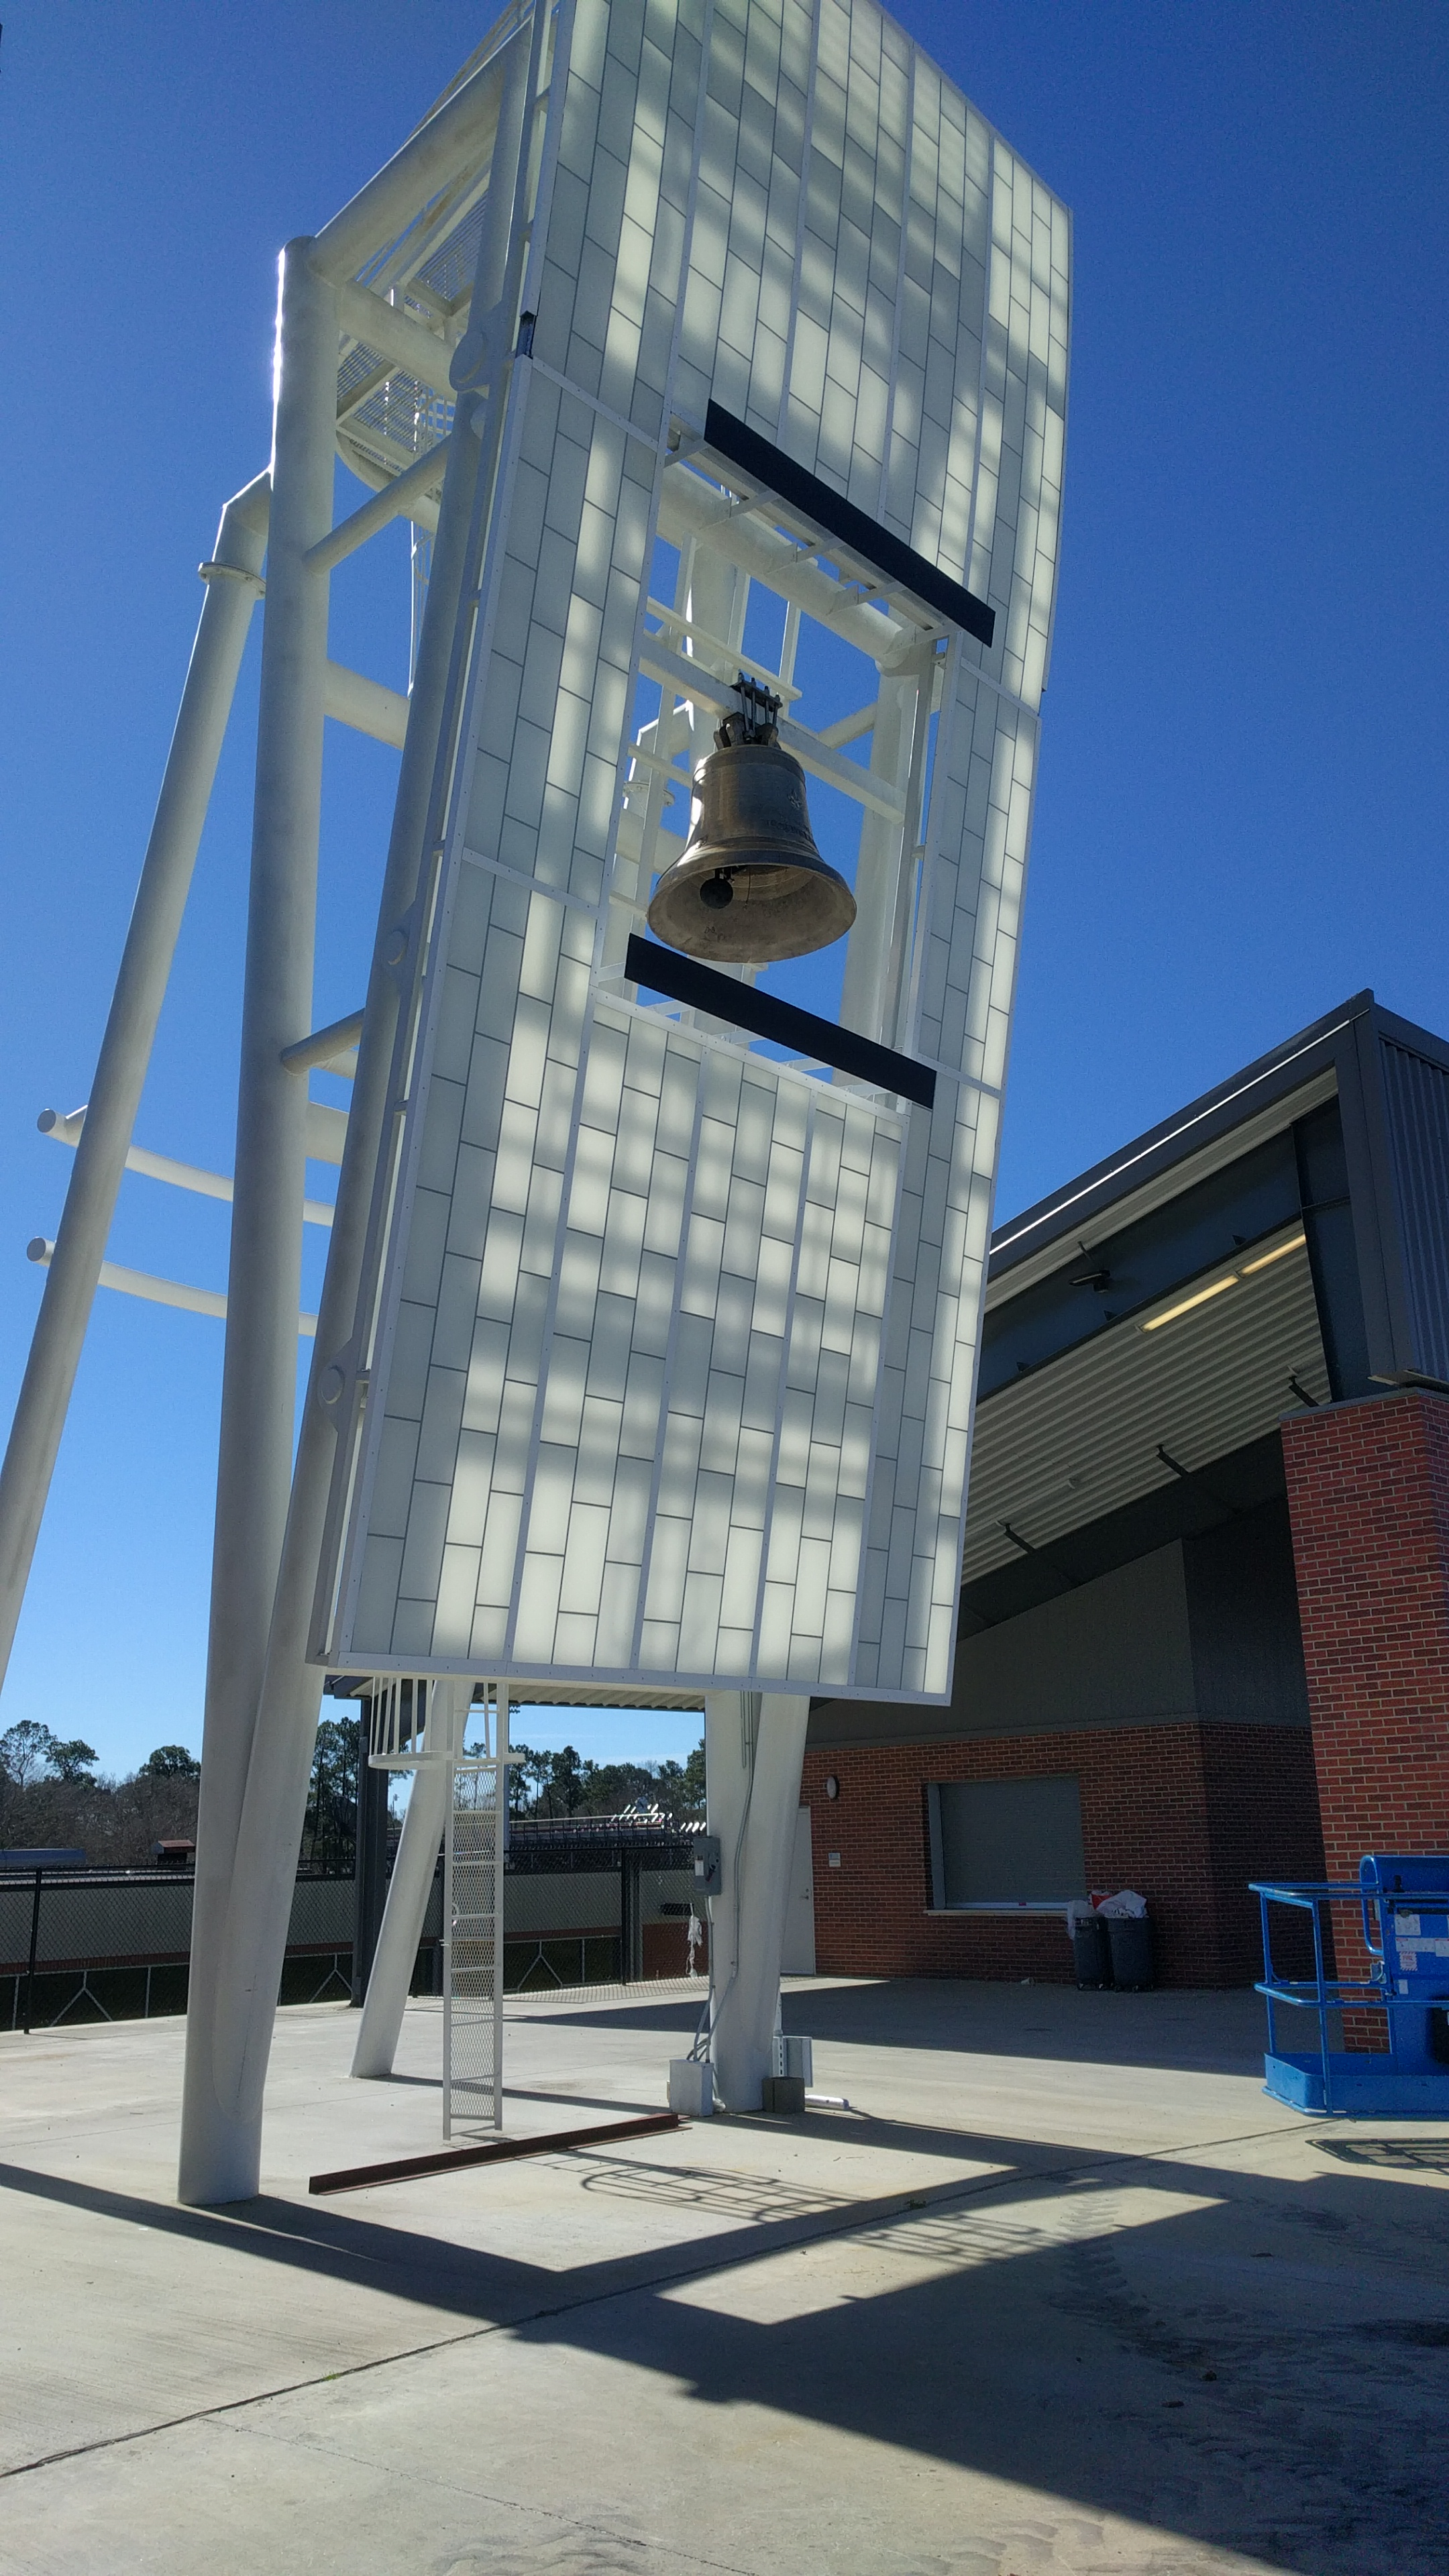 The new cast bronze victory bell at the Ragin' Cajuns stadium in Lafayette, Louisiana. Installed in 2016 by Chime Master in cooperation with the Paccard bell foundry.